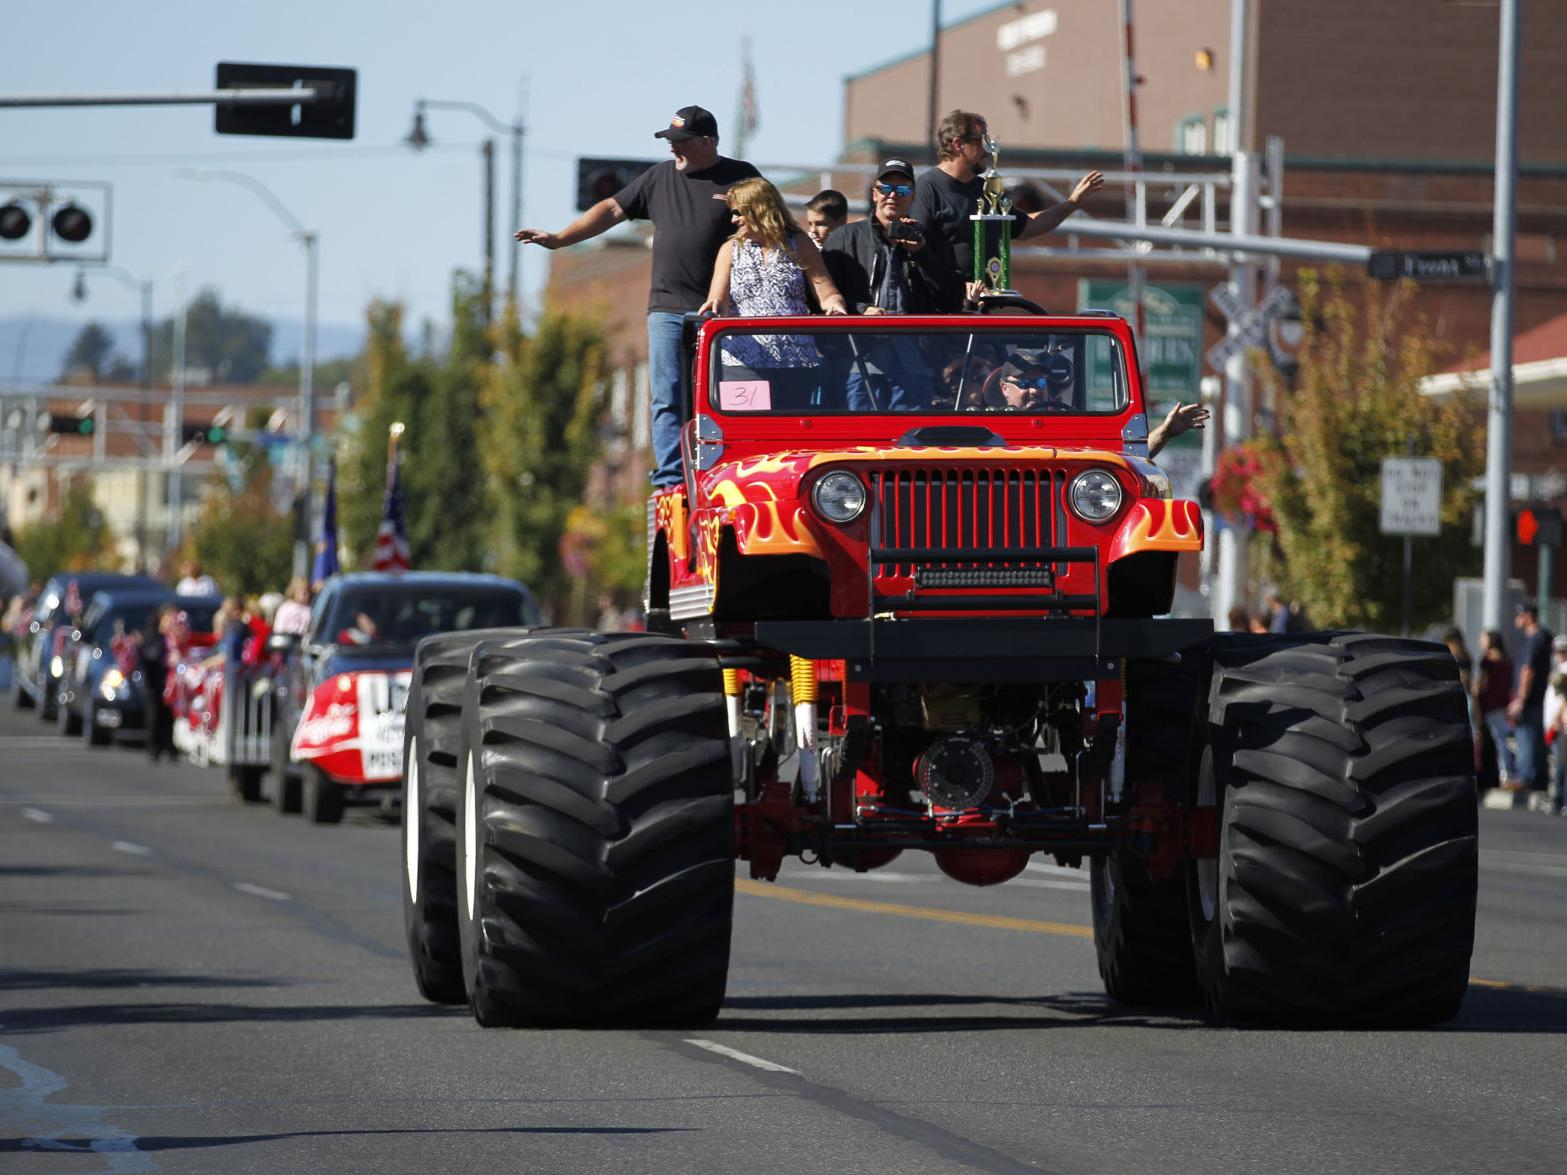 Legendary Monster Jeep Built By Yakima Native Gets A Second Life Local Yakimaherald Com